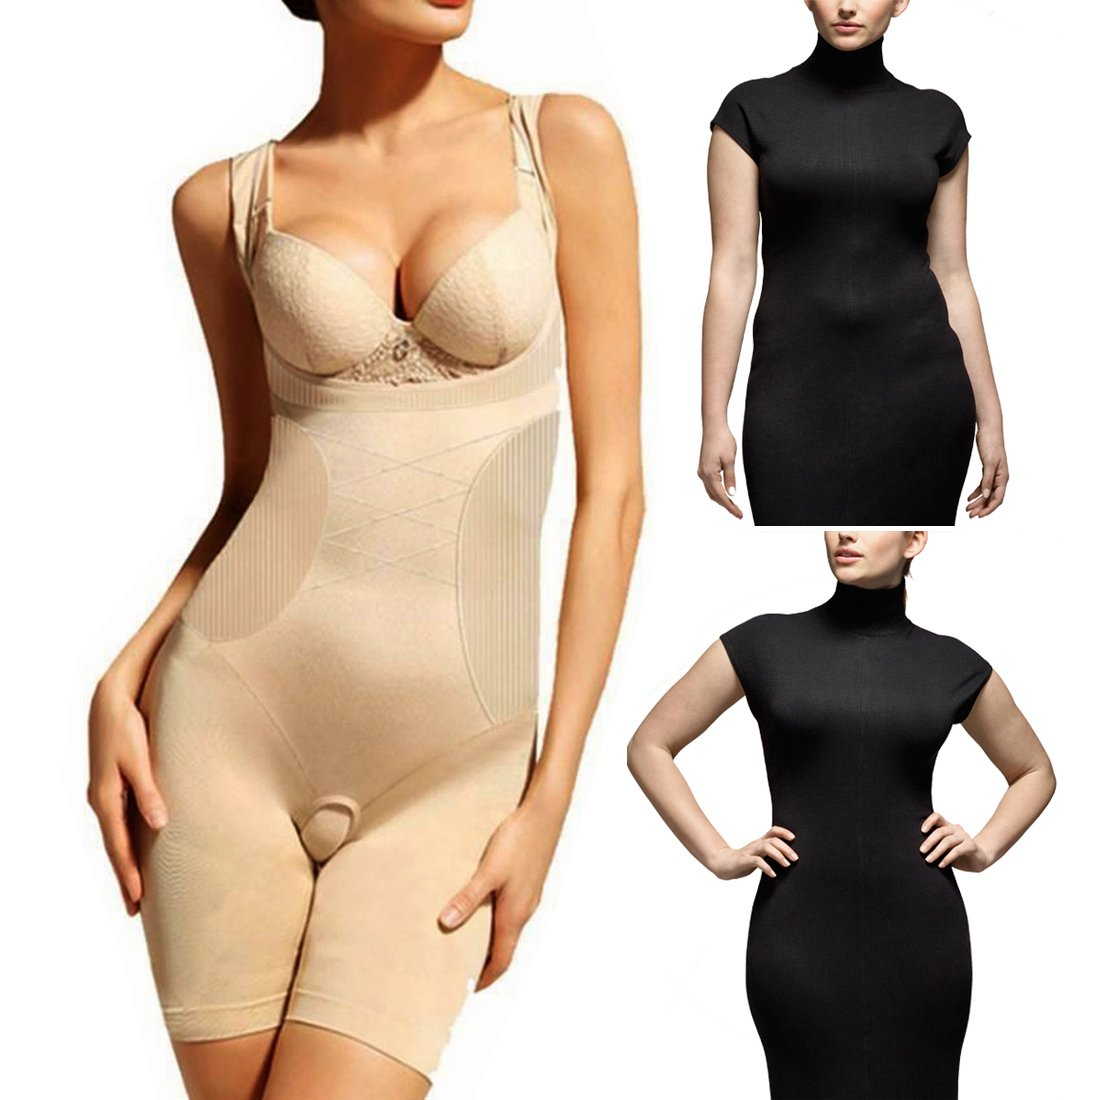 3764d94b371 Jm Woman Nylon Size M Weight Loss Slim N Lift Slimming Waist Shaper Trimmer  Belt Body California Beauty Brown 1 Pieces -A10  Amazon.in  Clothing   ...